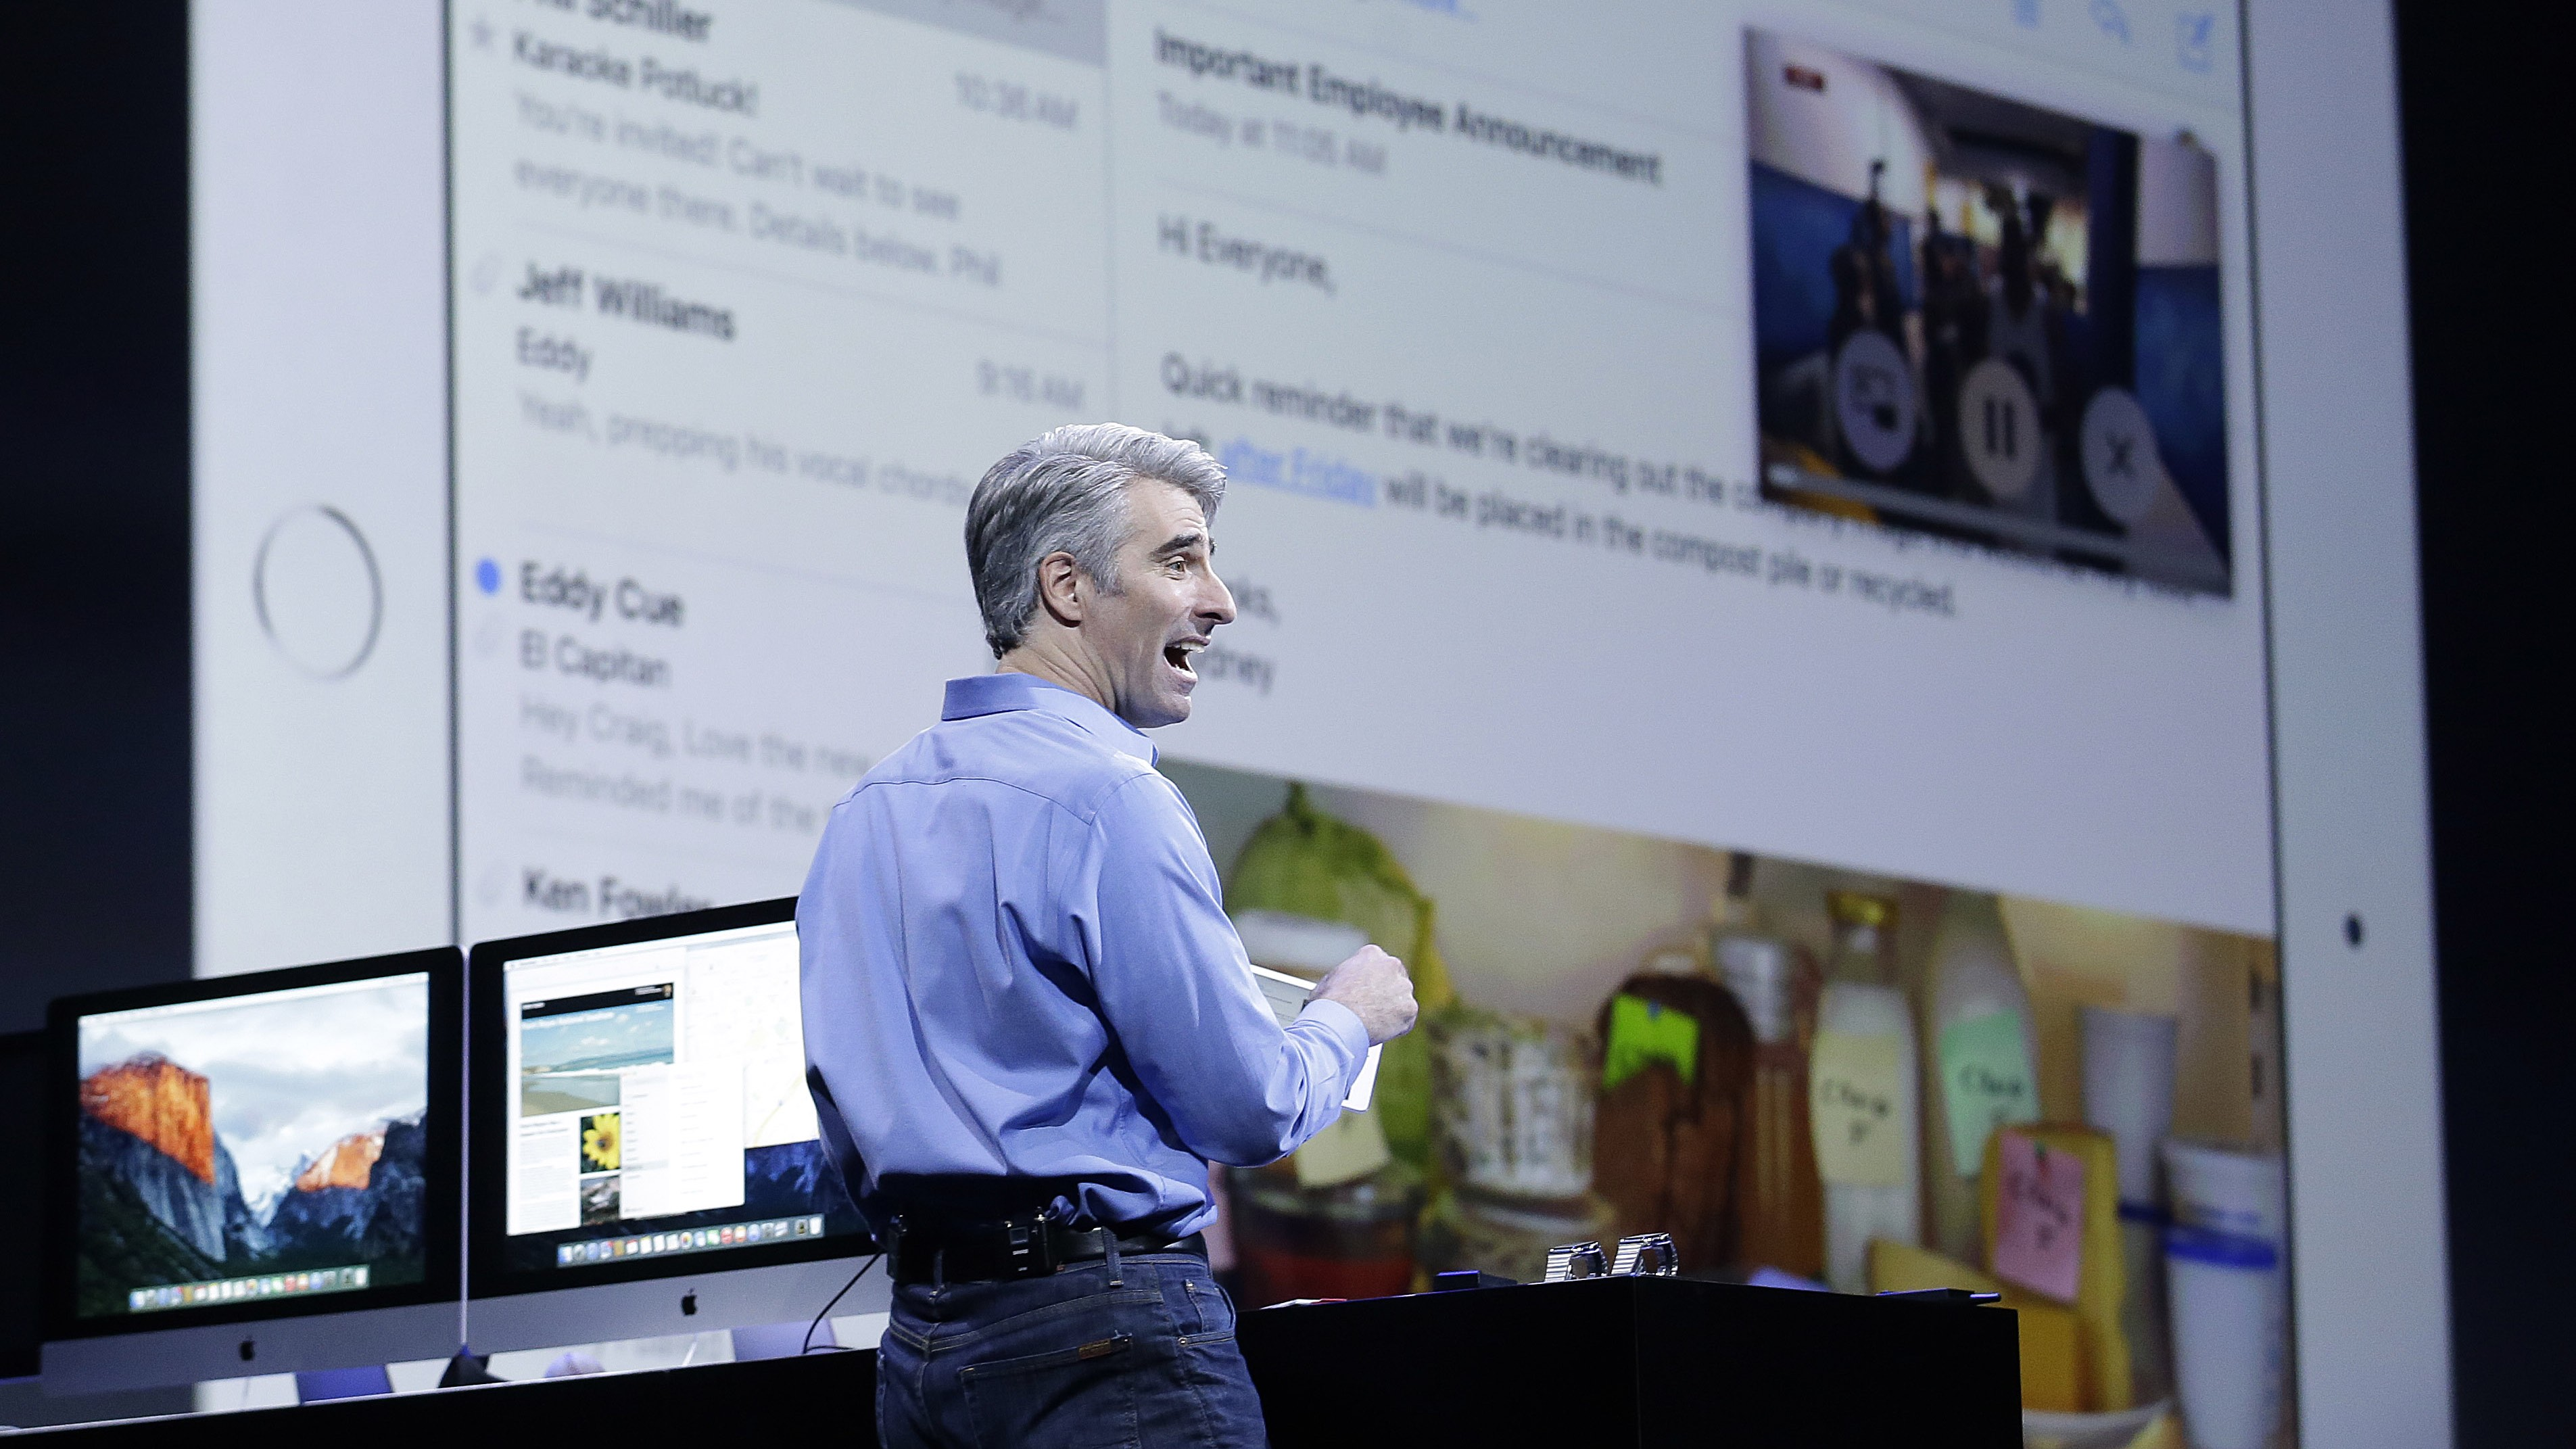 Craig Federighi, Apple senior vice president of Software Engineering, demonstrates the multitask feature on an iPad at the Apple Worldwide Developers Conference in San Francisco, Monday, June 8, 2015. (AP Photo/Jeff Chiu)